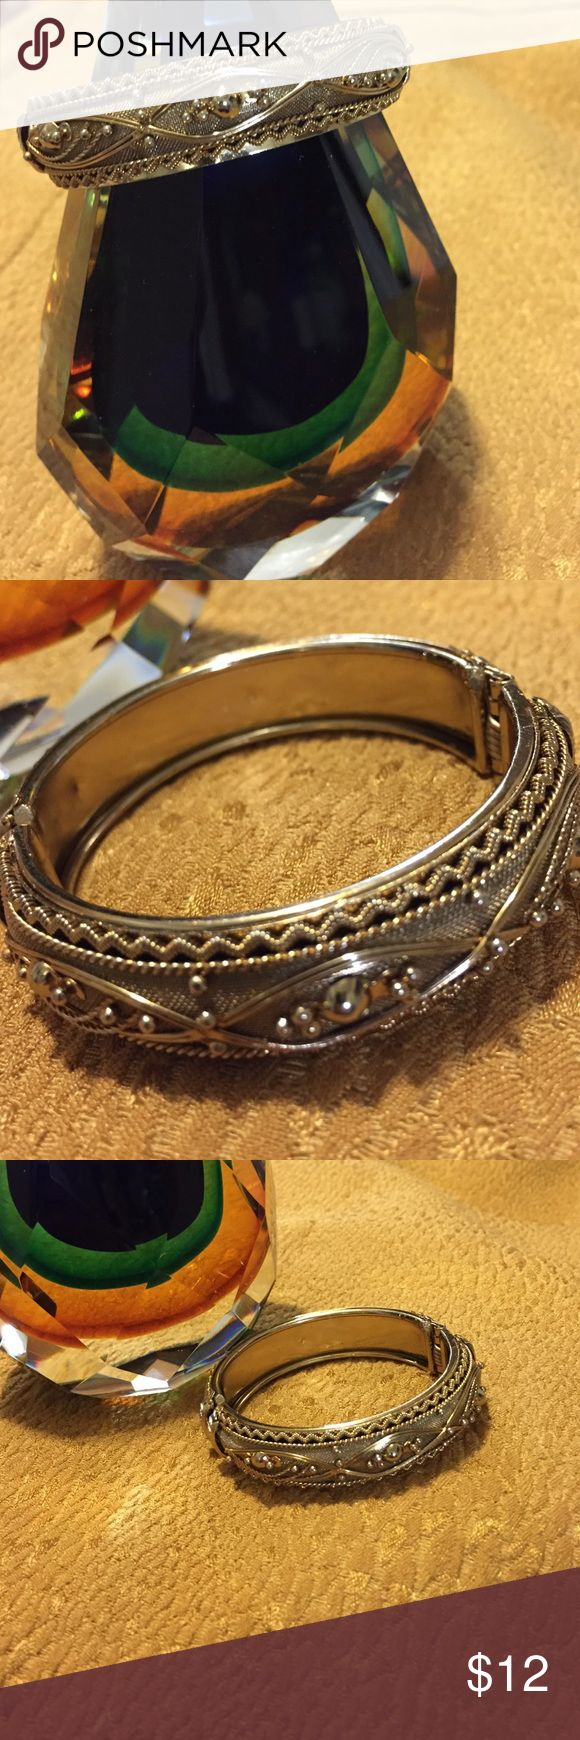 """Golden Bracelet - High Quality Costume Jewelry This gorgeous gold bracelet is high quality """"costume jewelry"""" that, at a distance, looks Ike the """"real deal."""" 💚 New, without tags. Unknown Jewelry Bracelets"""